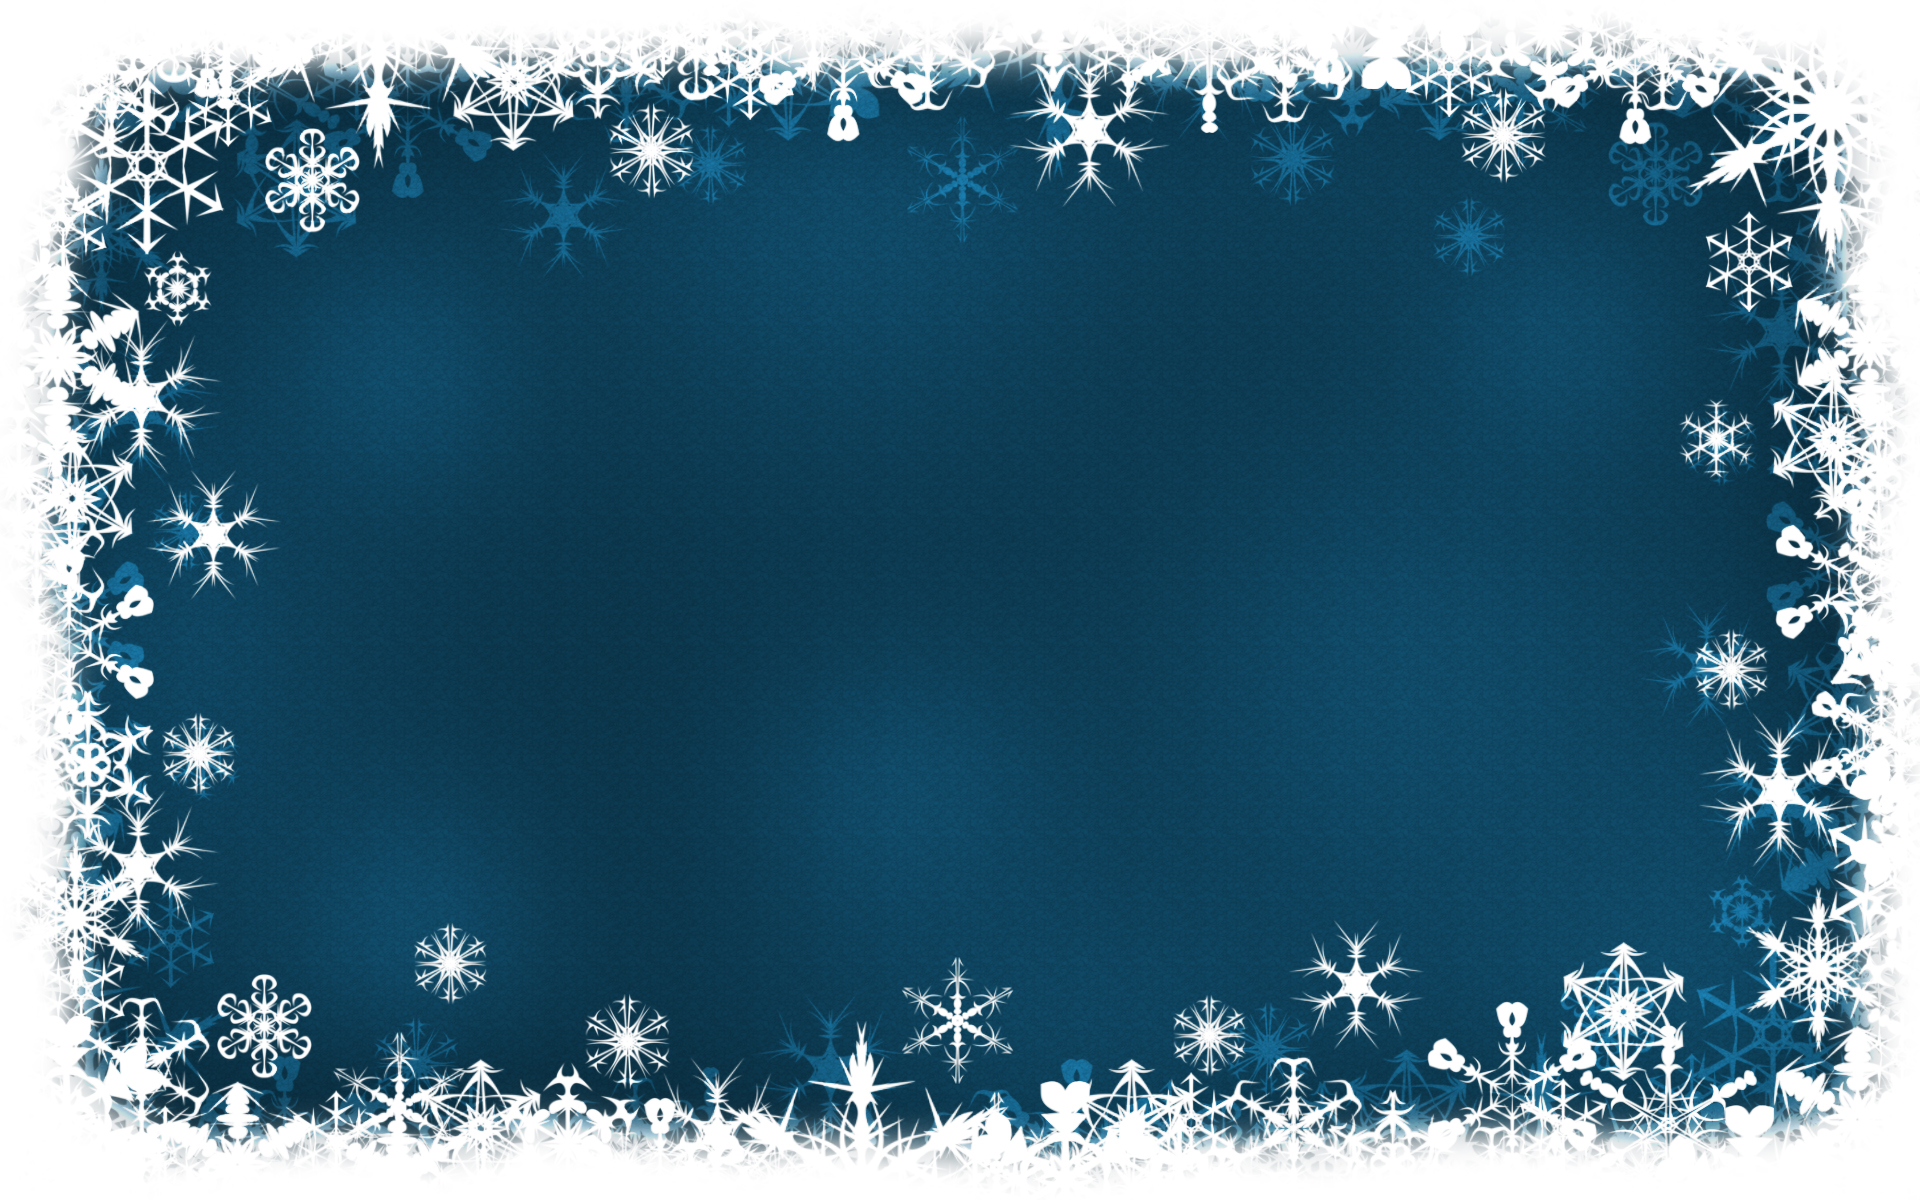 76 christmas background image on wallpapersafari 76 christmas background image on